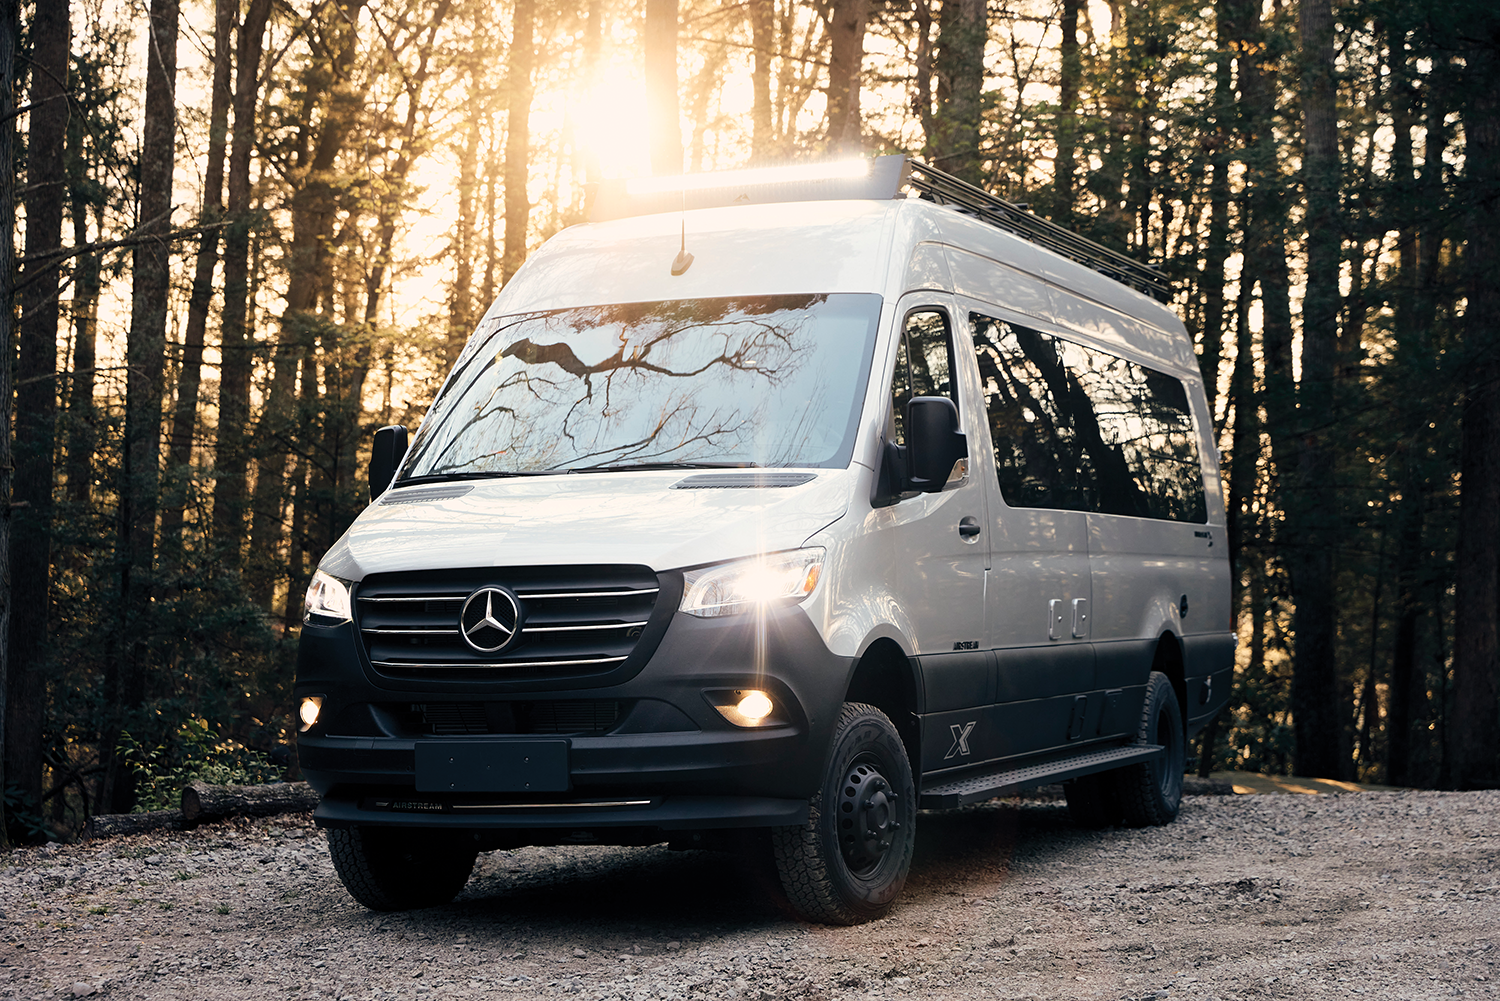 Airstream adds adventure to the Interstate line with the new 24X